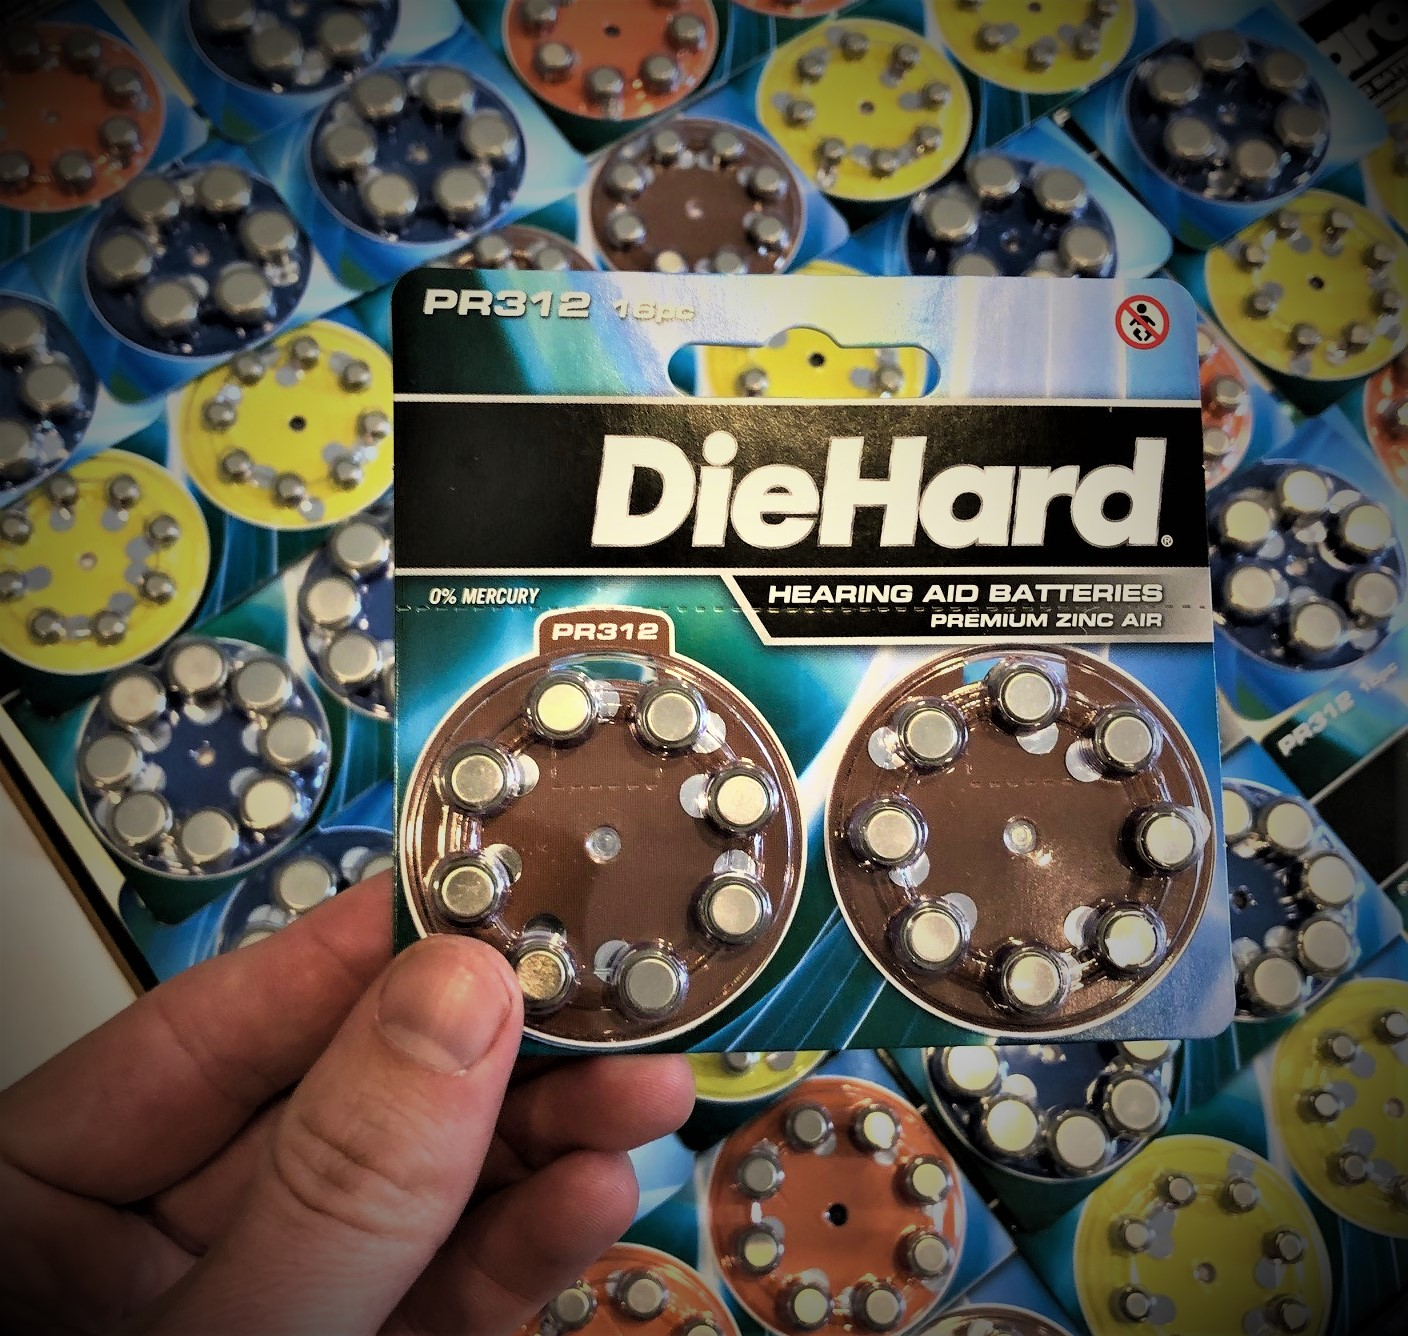 size 312 hearing aid batteries held over size 10 hearing aid batteries, size 13 hearing aid batteries, and size 675 hearing aid batteries